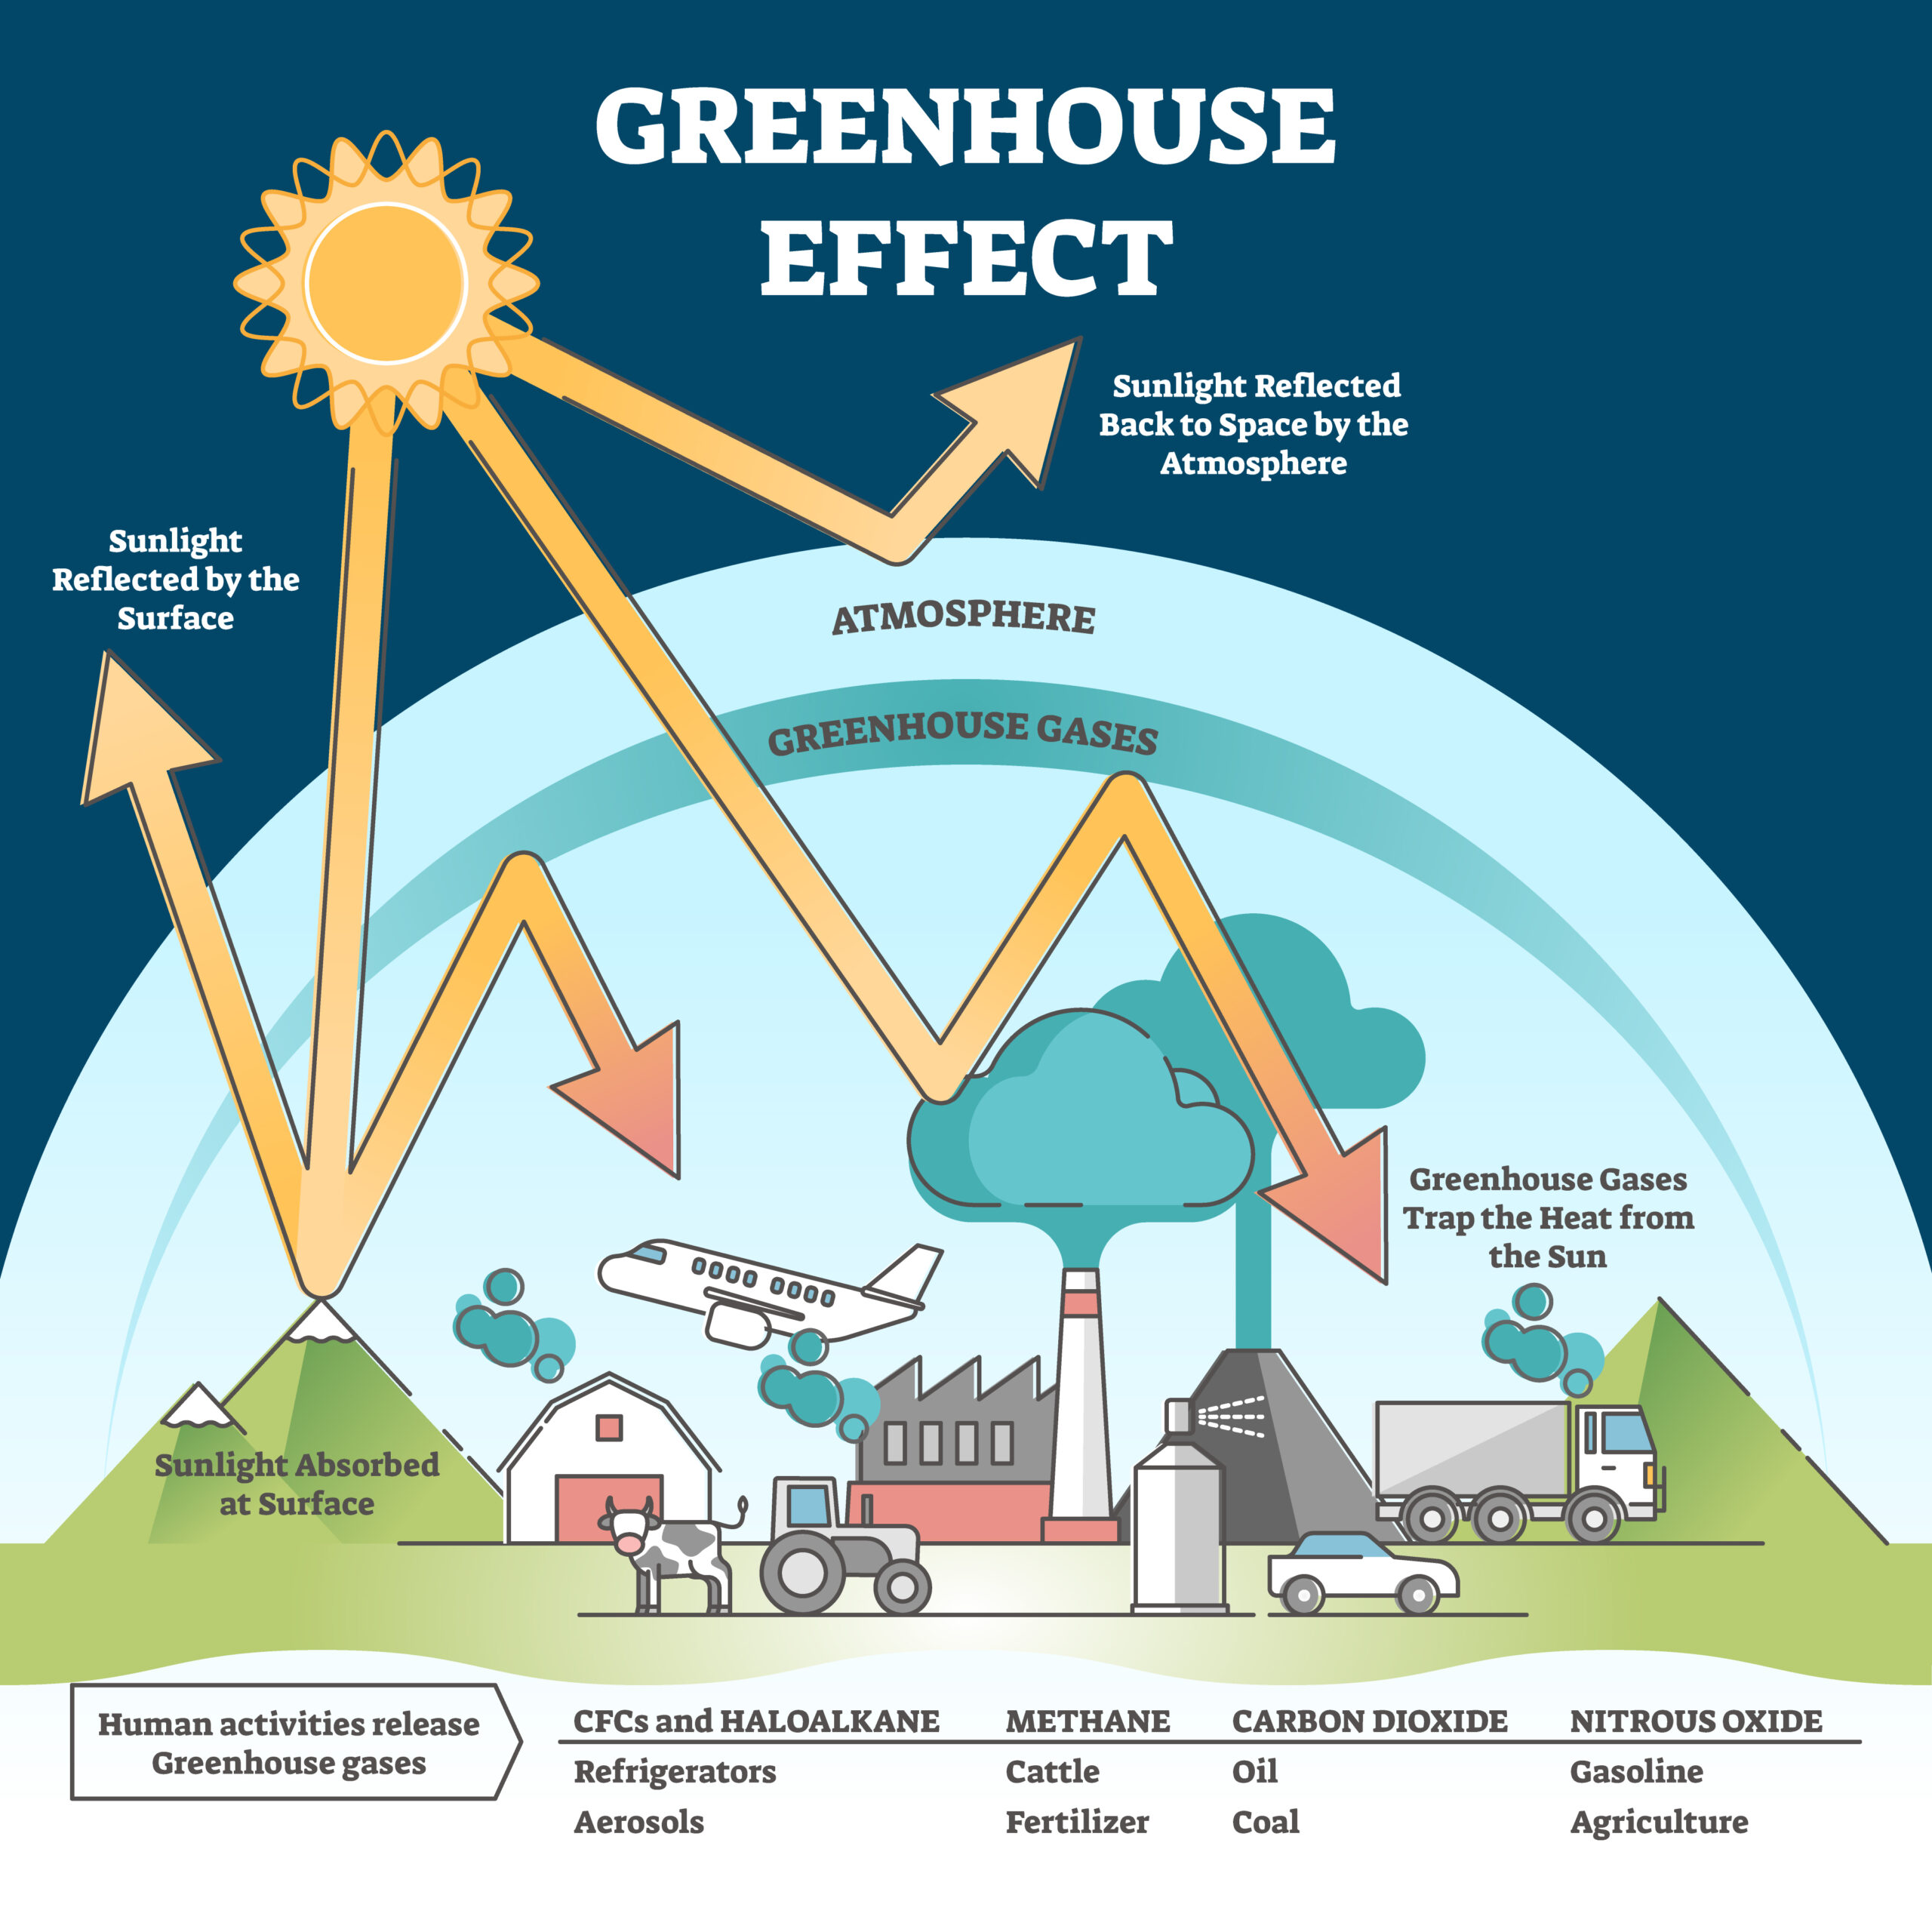 An infographic depicting how greenhouse gases affect the climate and cause global warming.